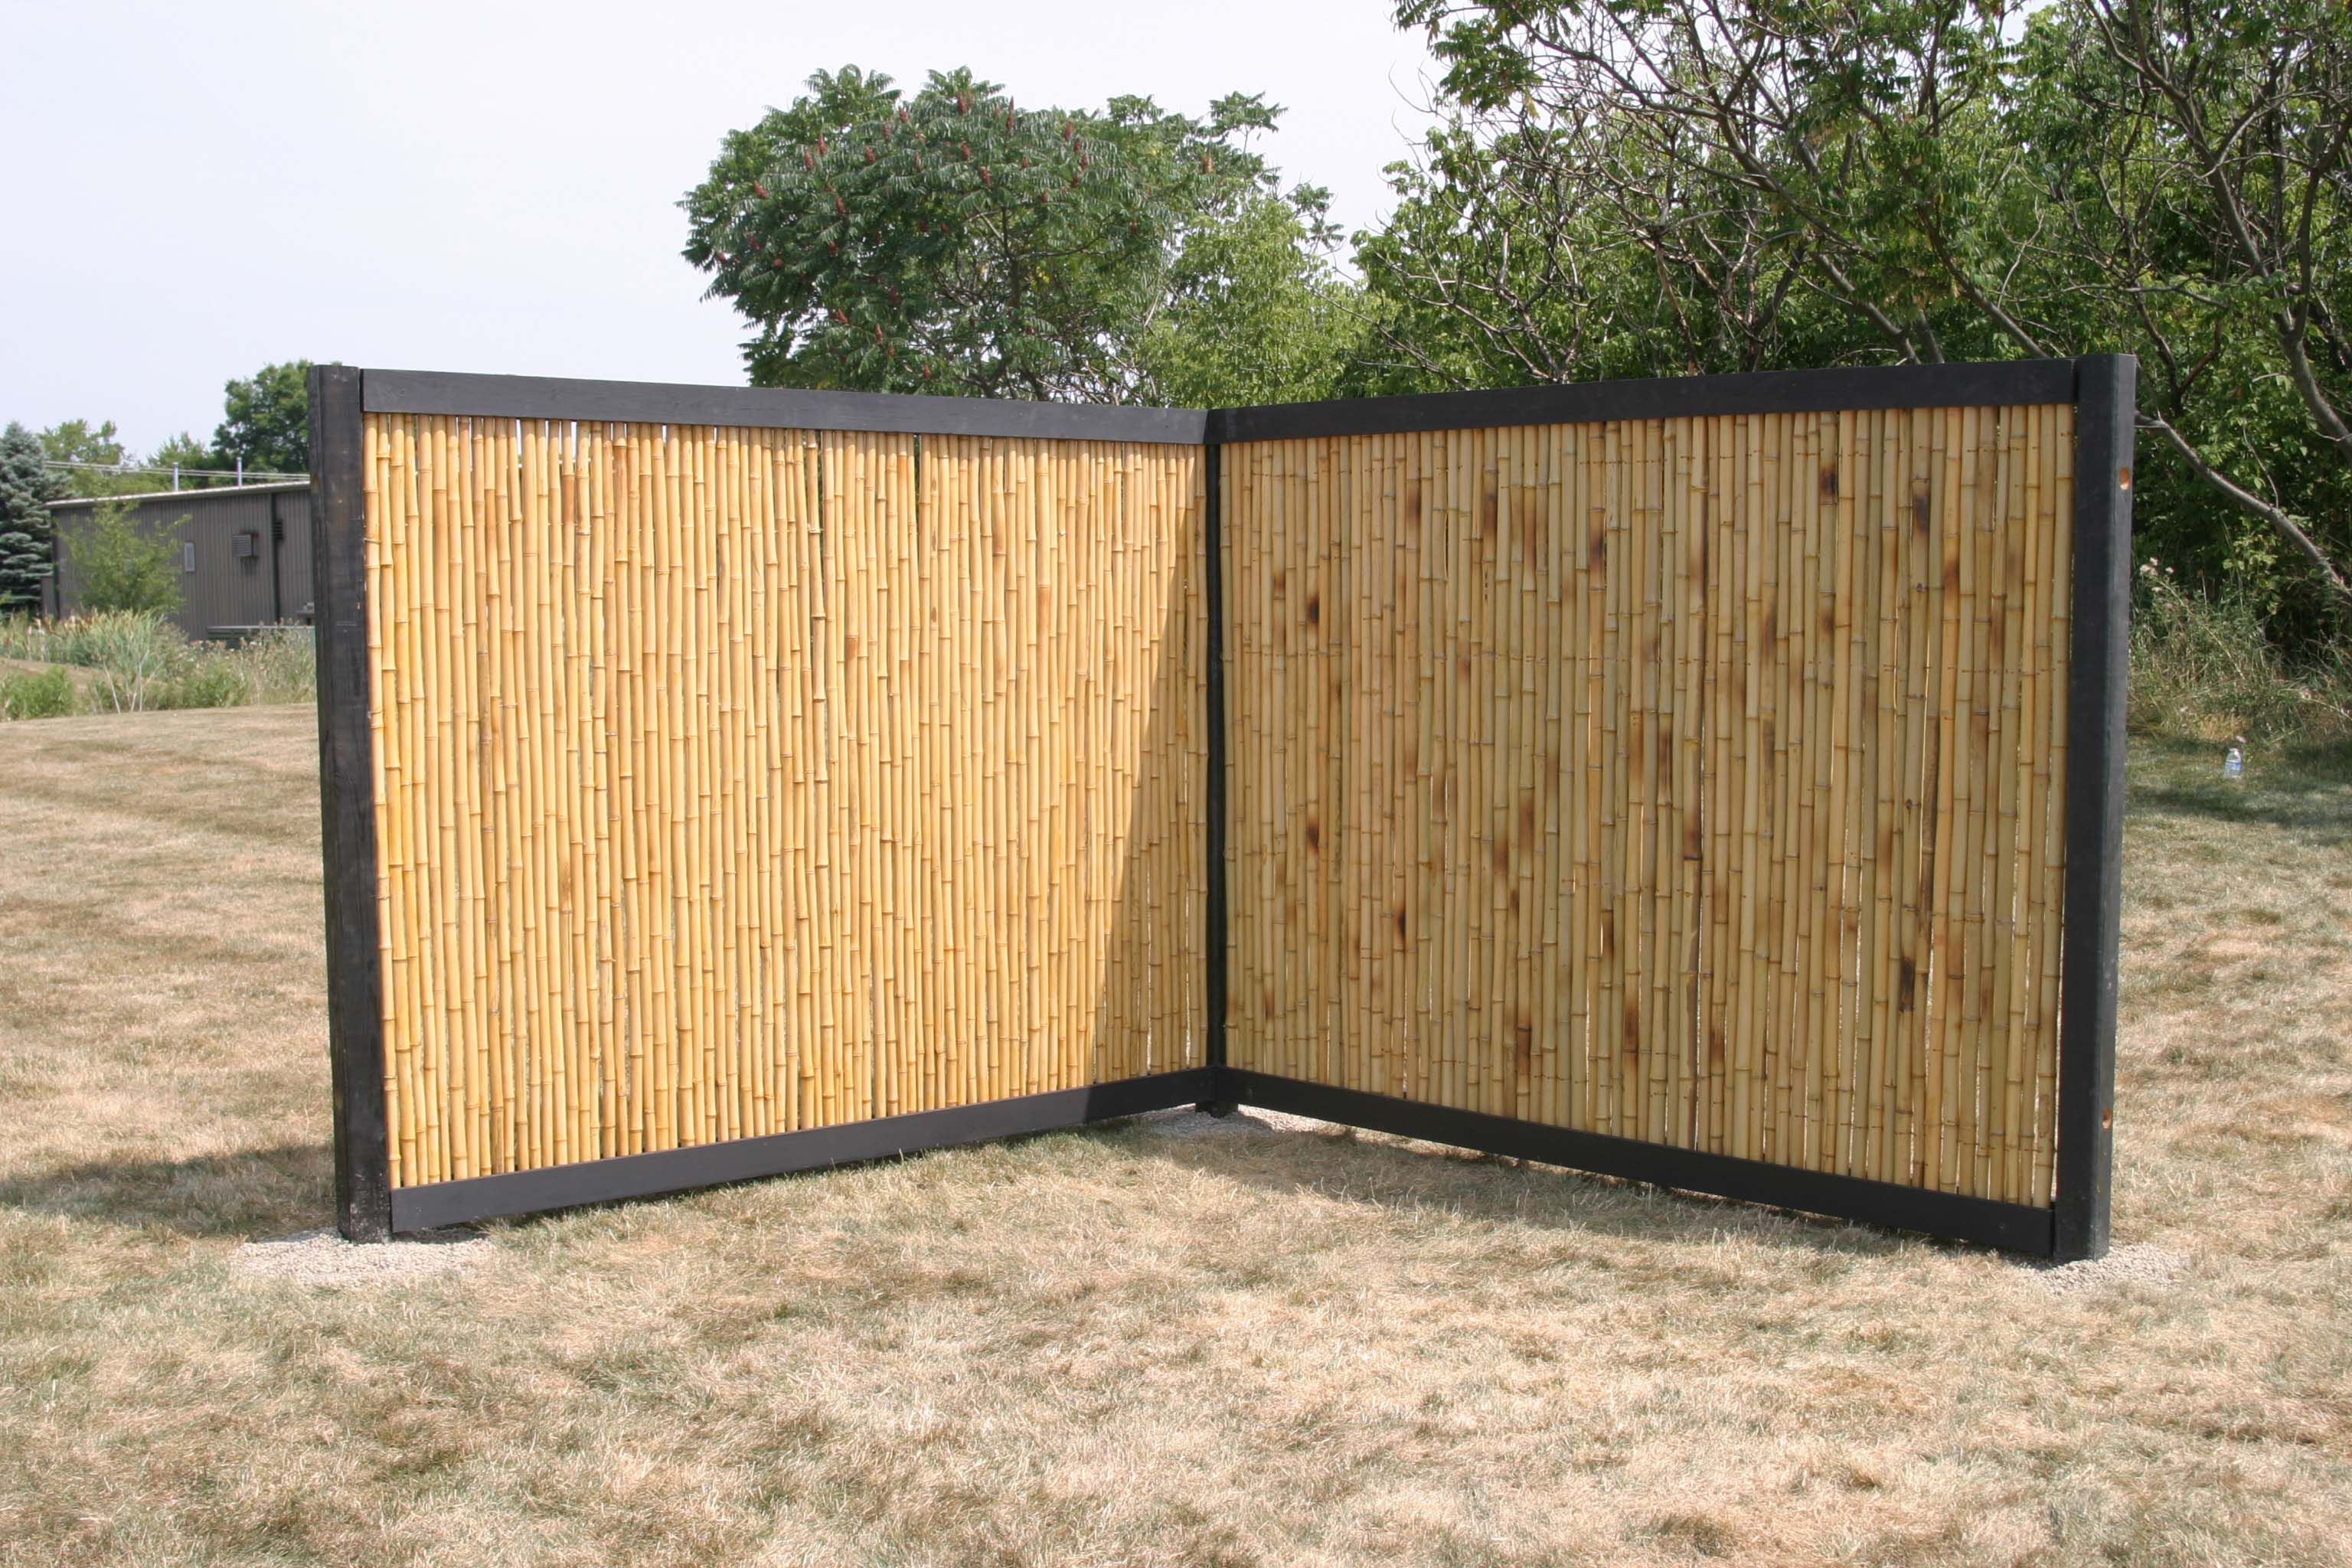 Test installation of bamboo fencing at Waddell